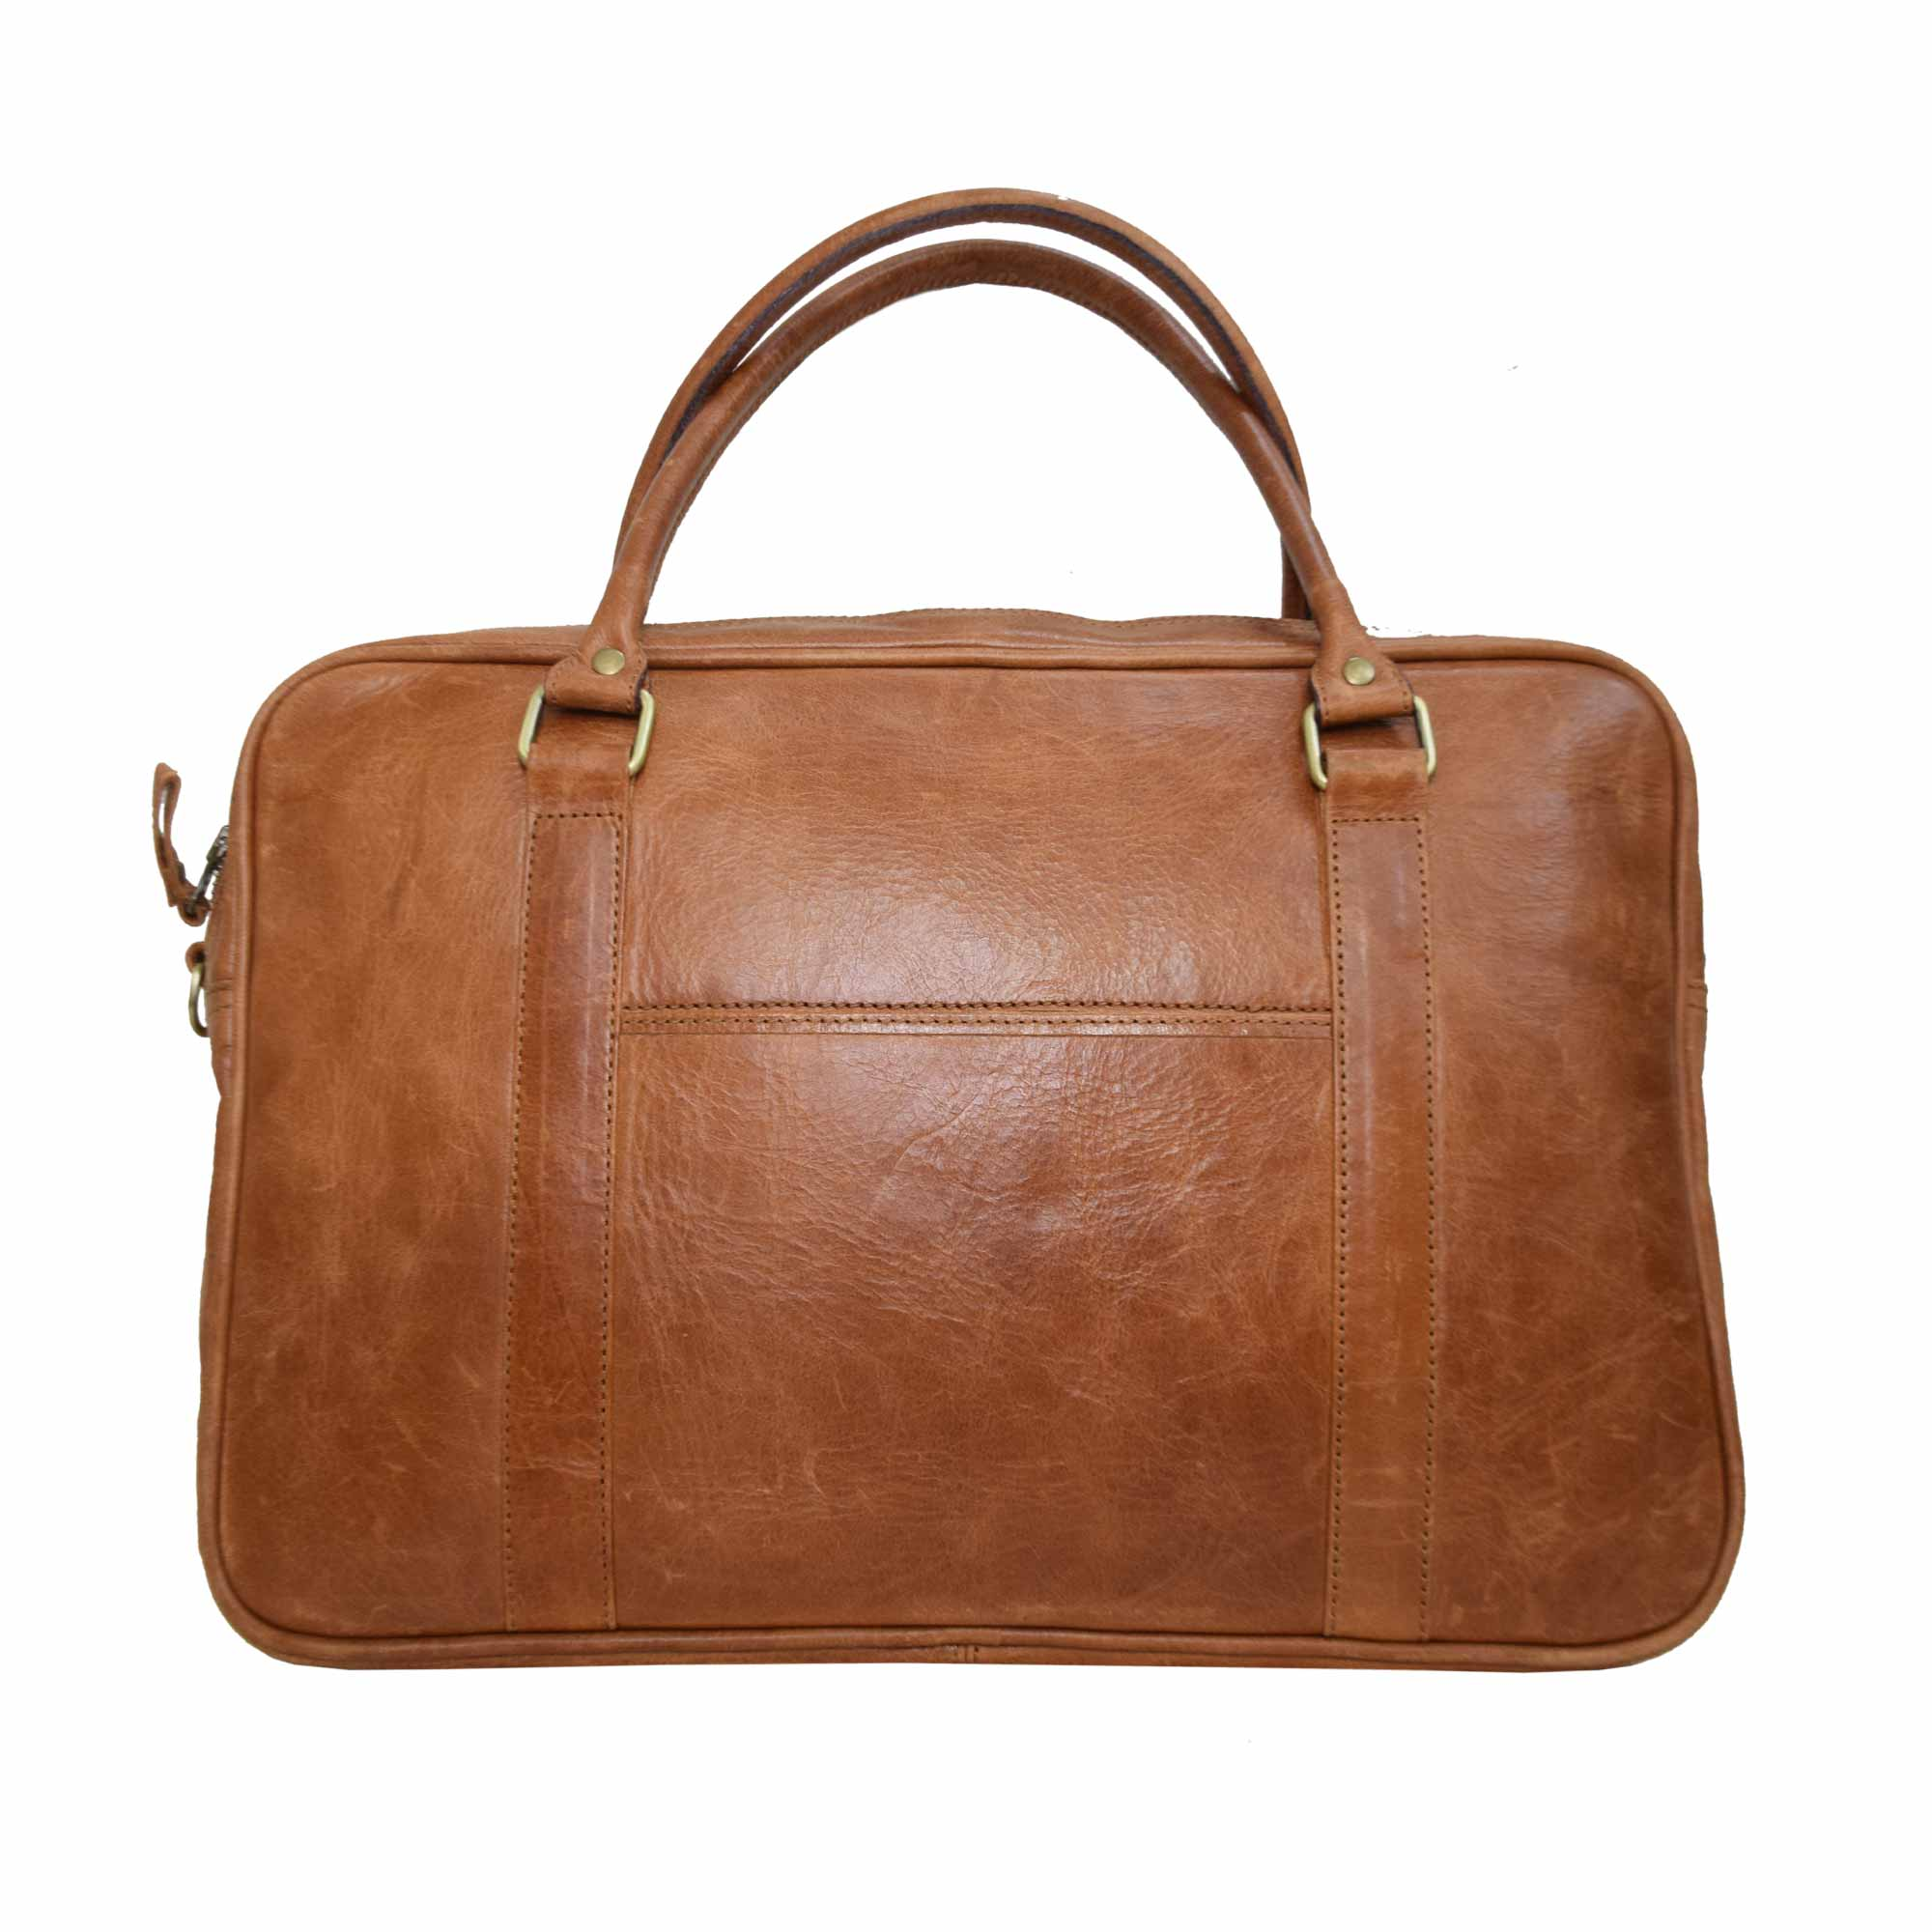 BROWN LAPTOP / MESSENGER BAG FOR 15 INCH LAPTOPS AND SMALL ACCESSORIES